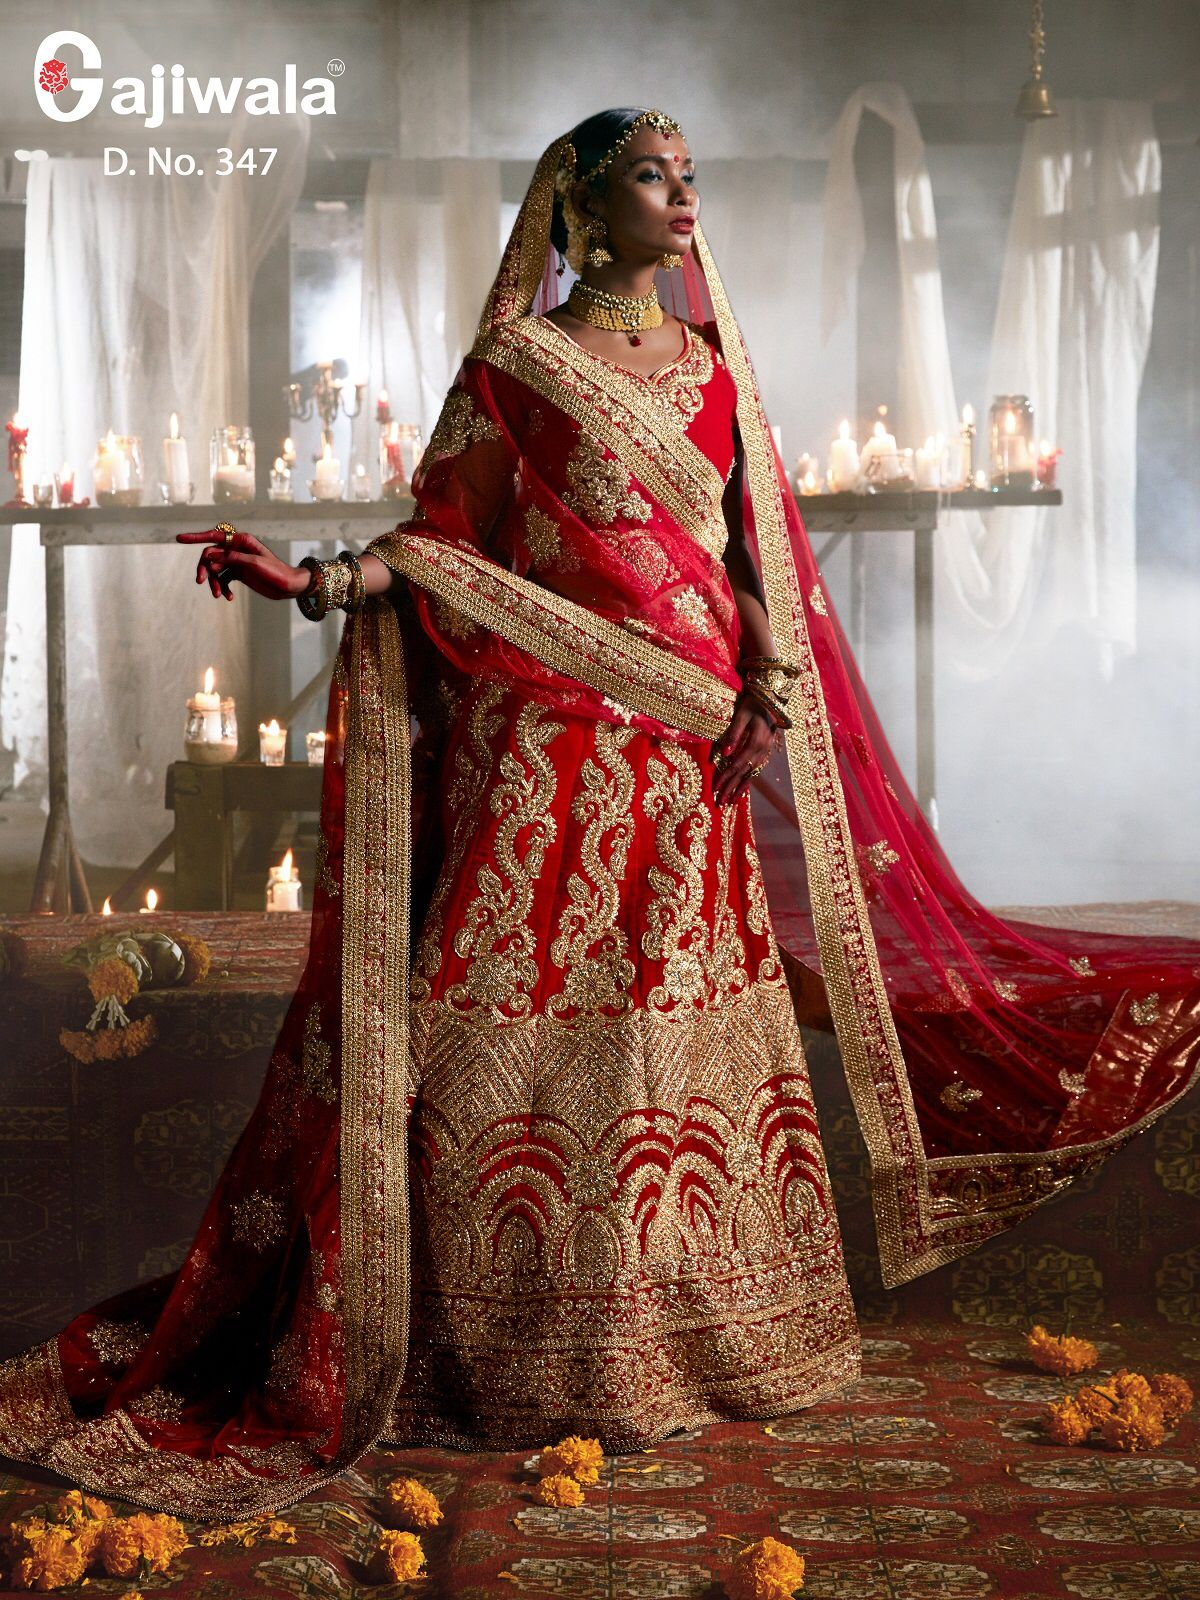 19c56f444 Gajiwala Saree Manufacturers of Lehenga choli from Surat For any query  please contact us on  info gajiwalasaree.com Or Whatsapp  call   + 91  9687064601